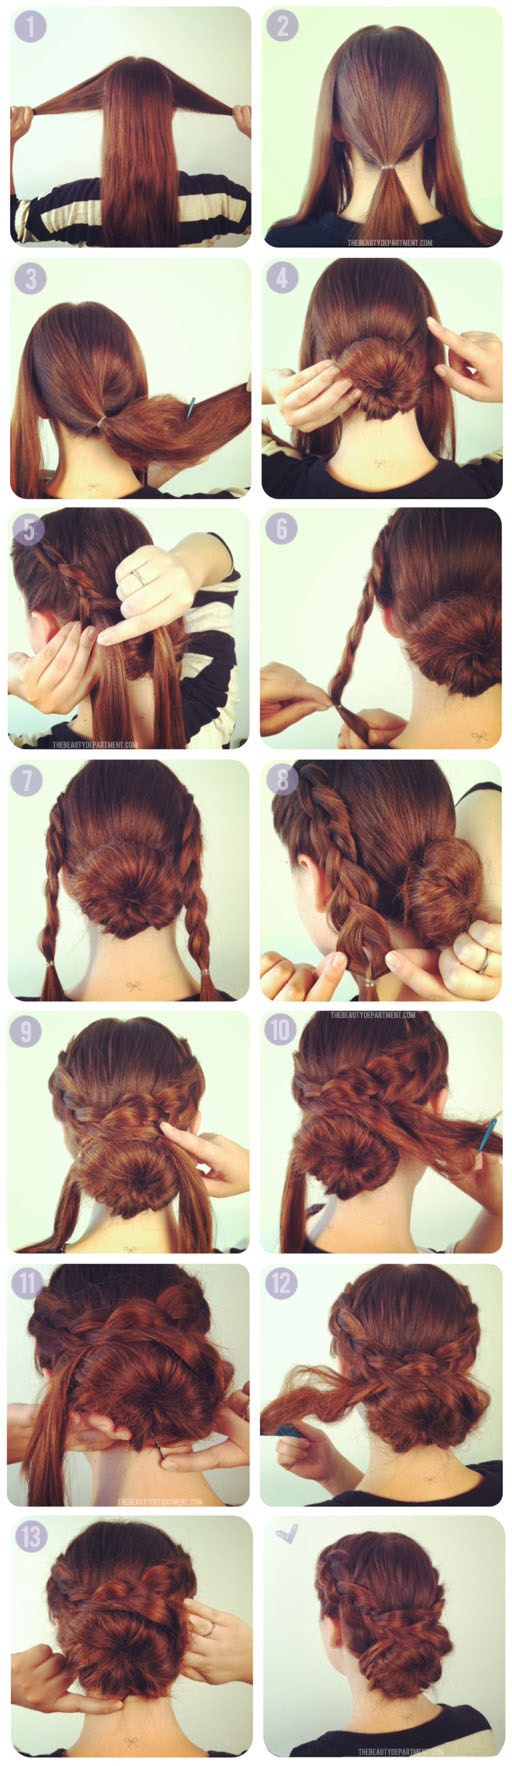 Braid Around Bun